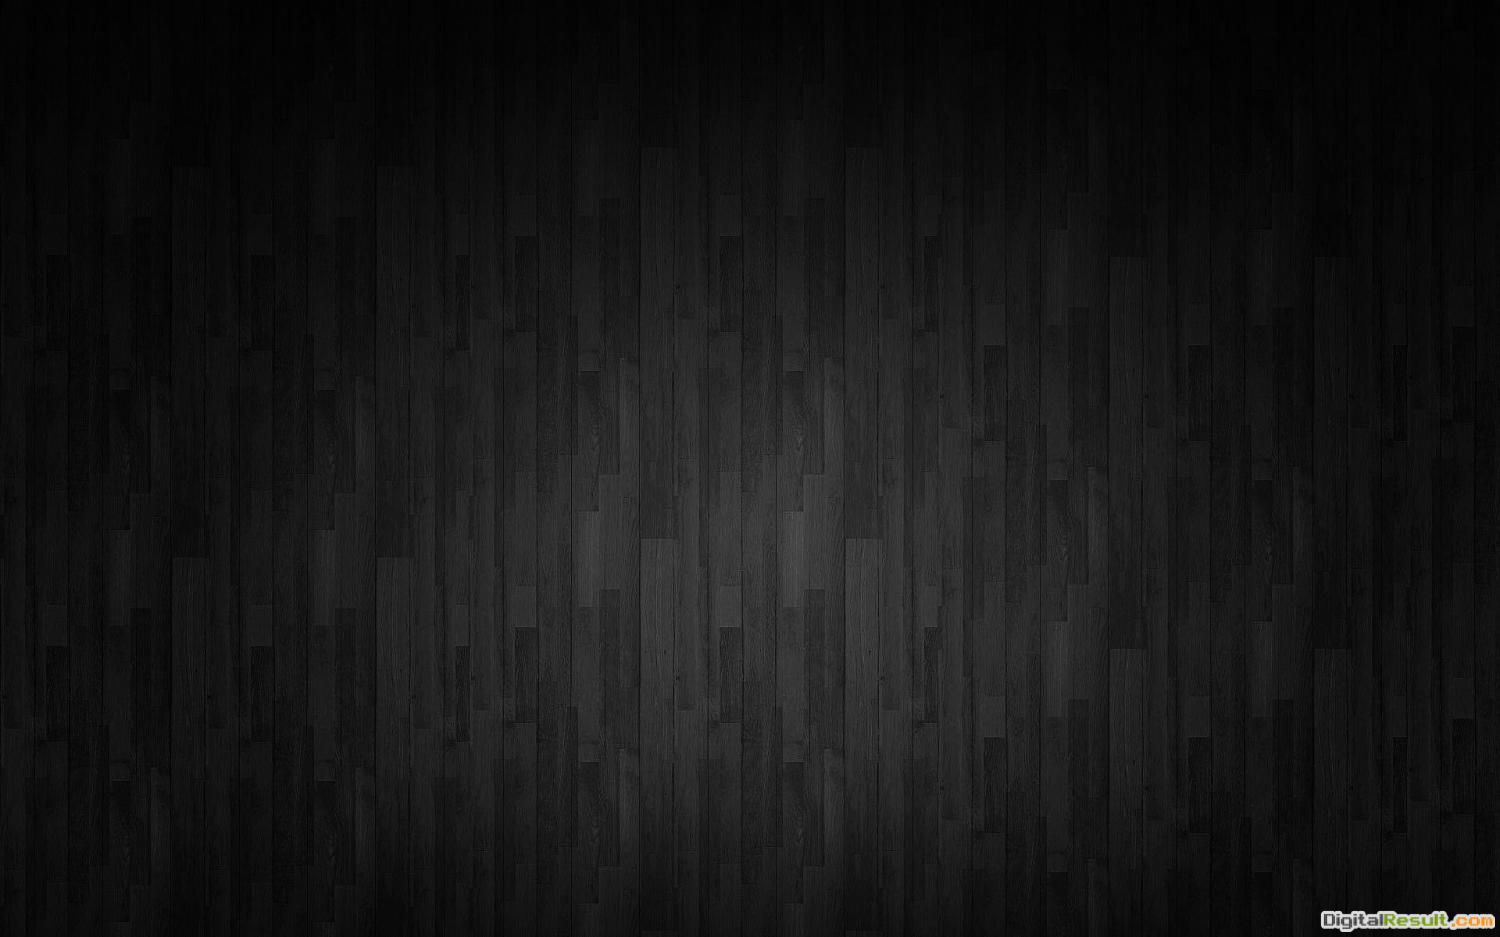 Dark Wood Texture Wallpaper for AndroidAndroid Live Wallpaper 516